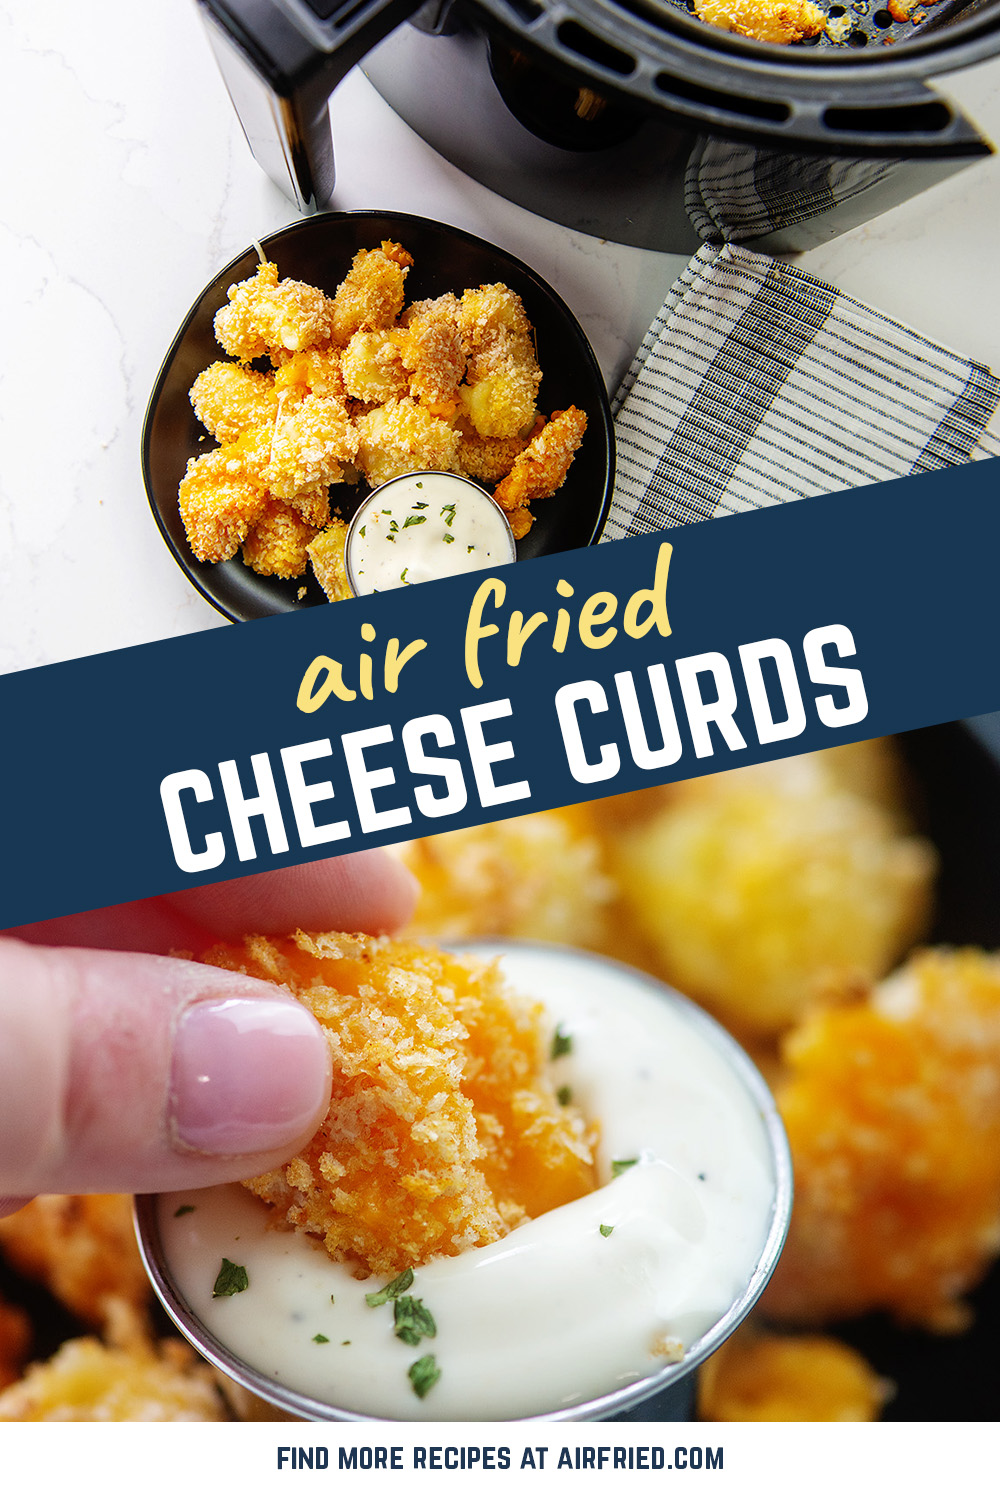 Cheese curds are coated in panko and air fried for a classic favorite appetizer! #airfryer #cheeseballs #friedrecipes